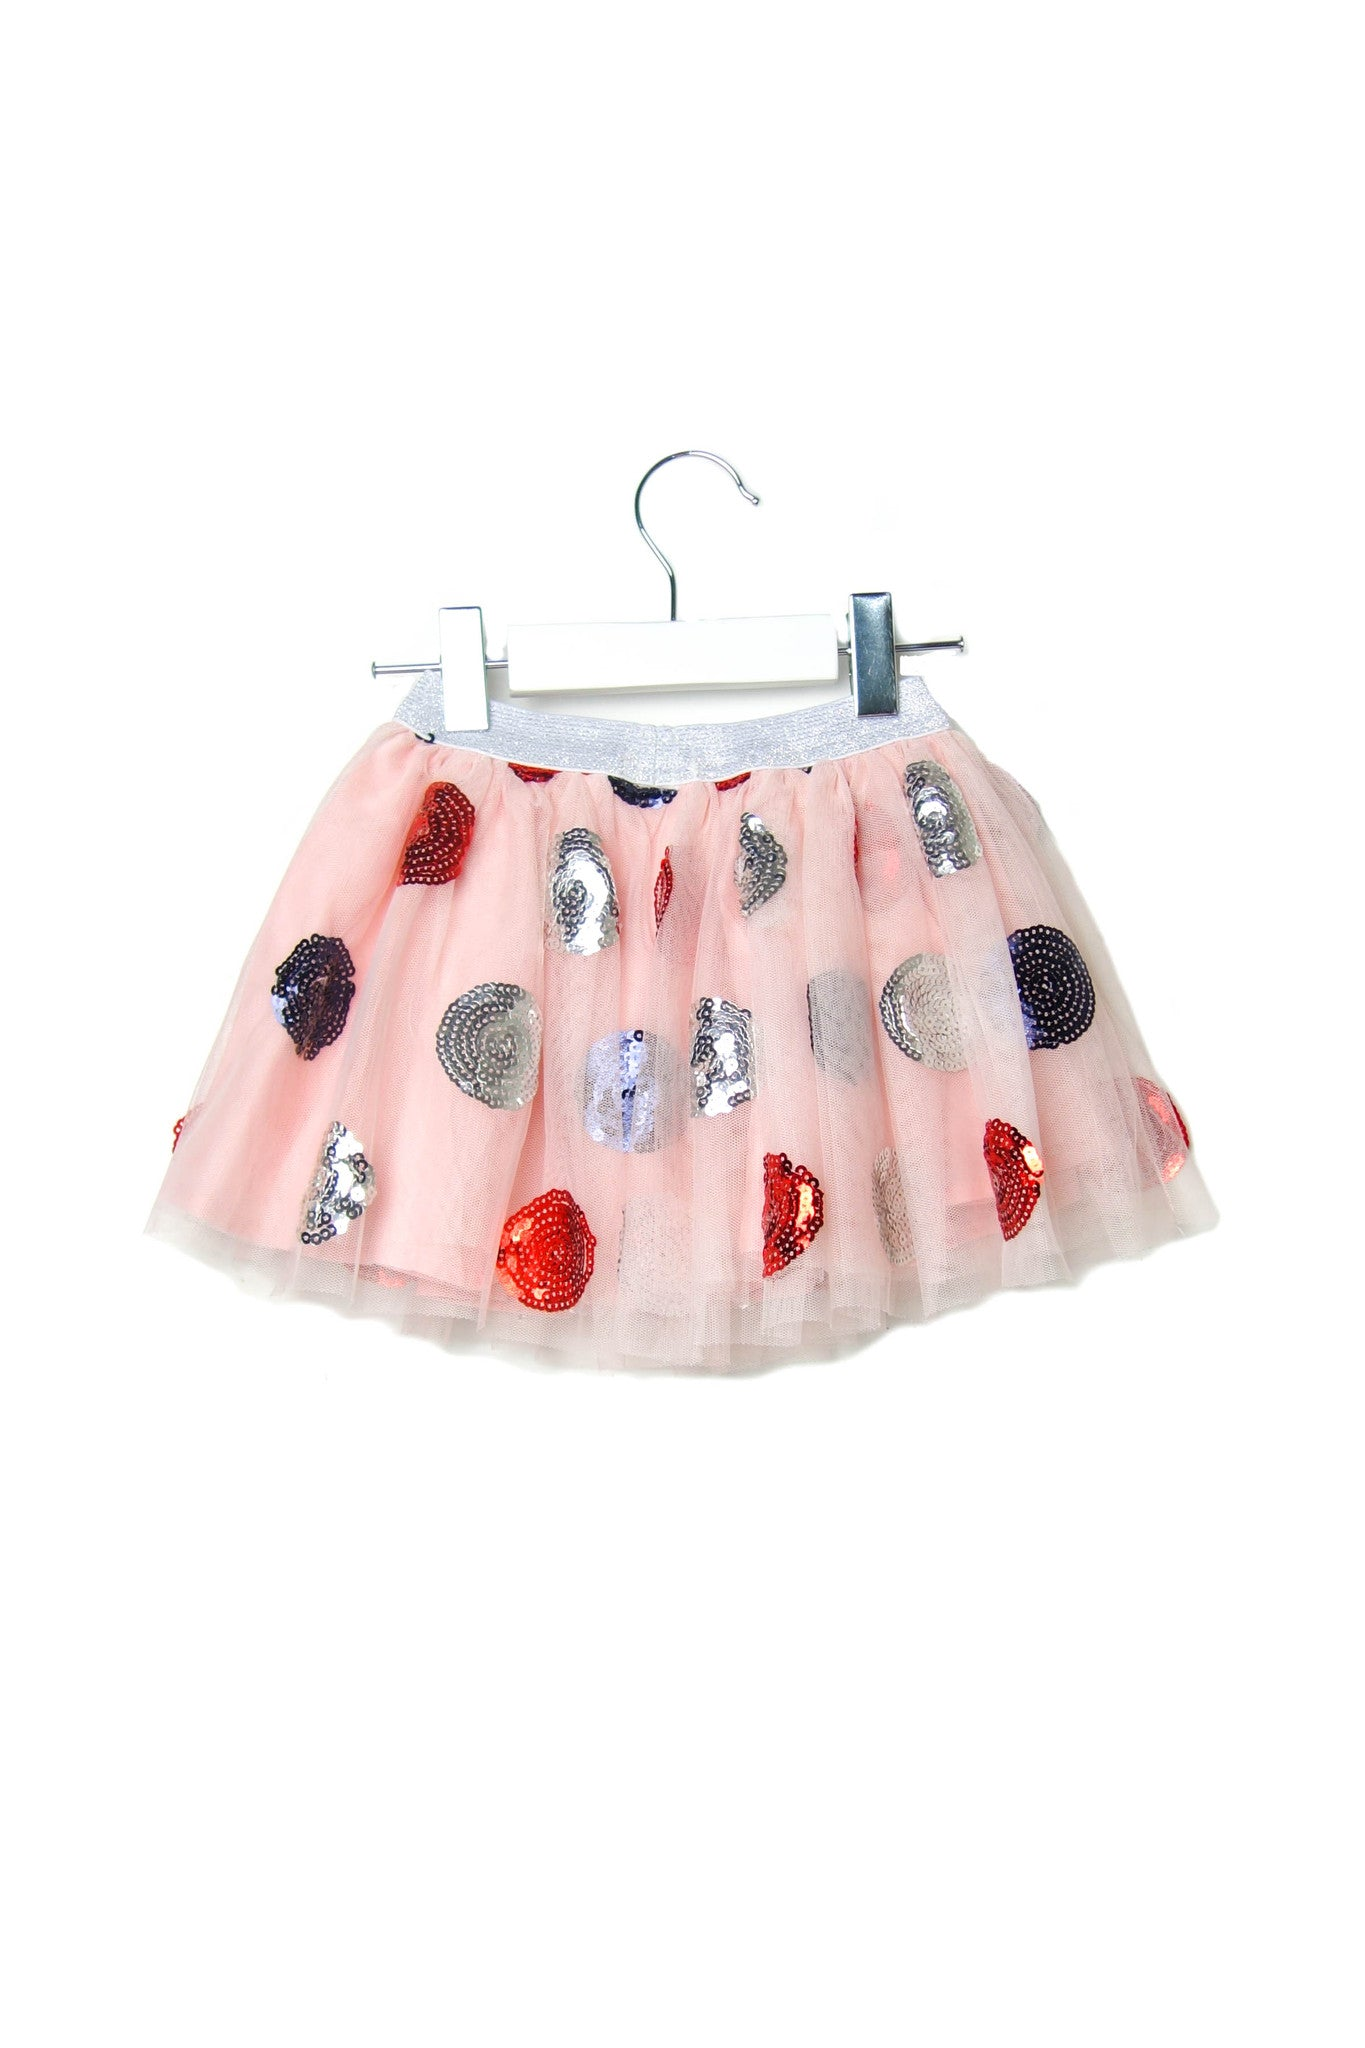 10001423~Skirt 1-2T, Seed at Retykle - Online Baby & Kids Clothing Up to 90% Off